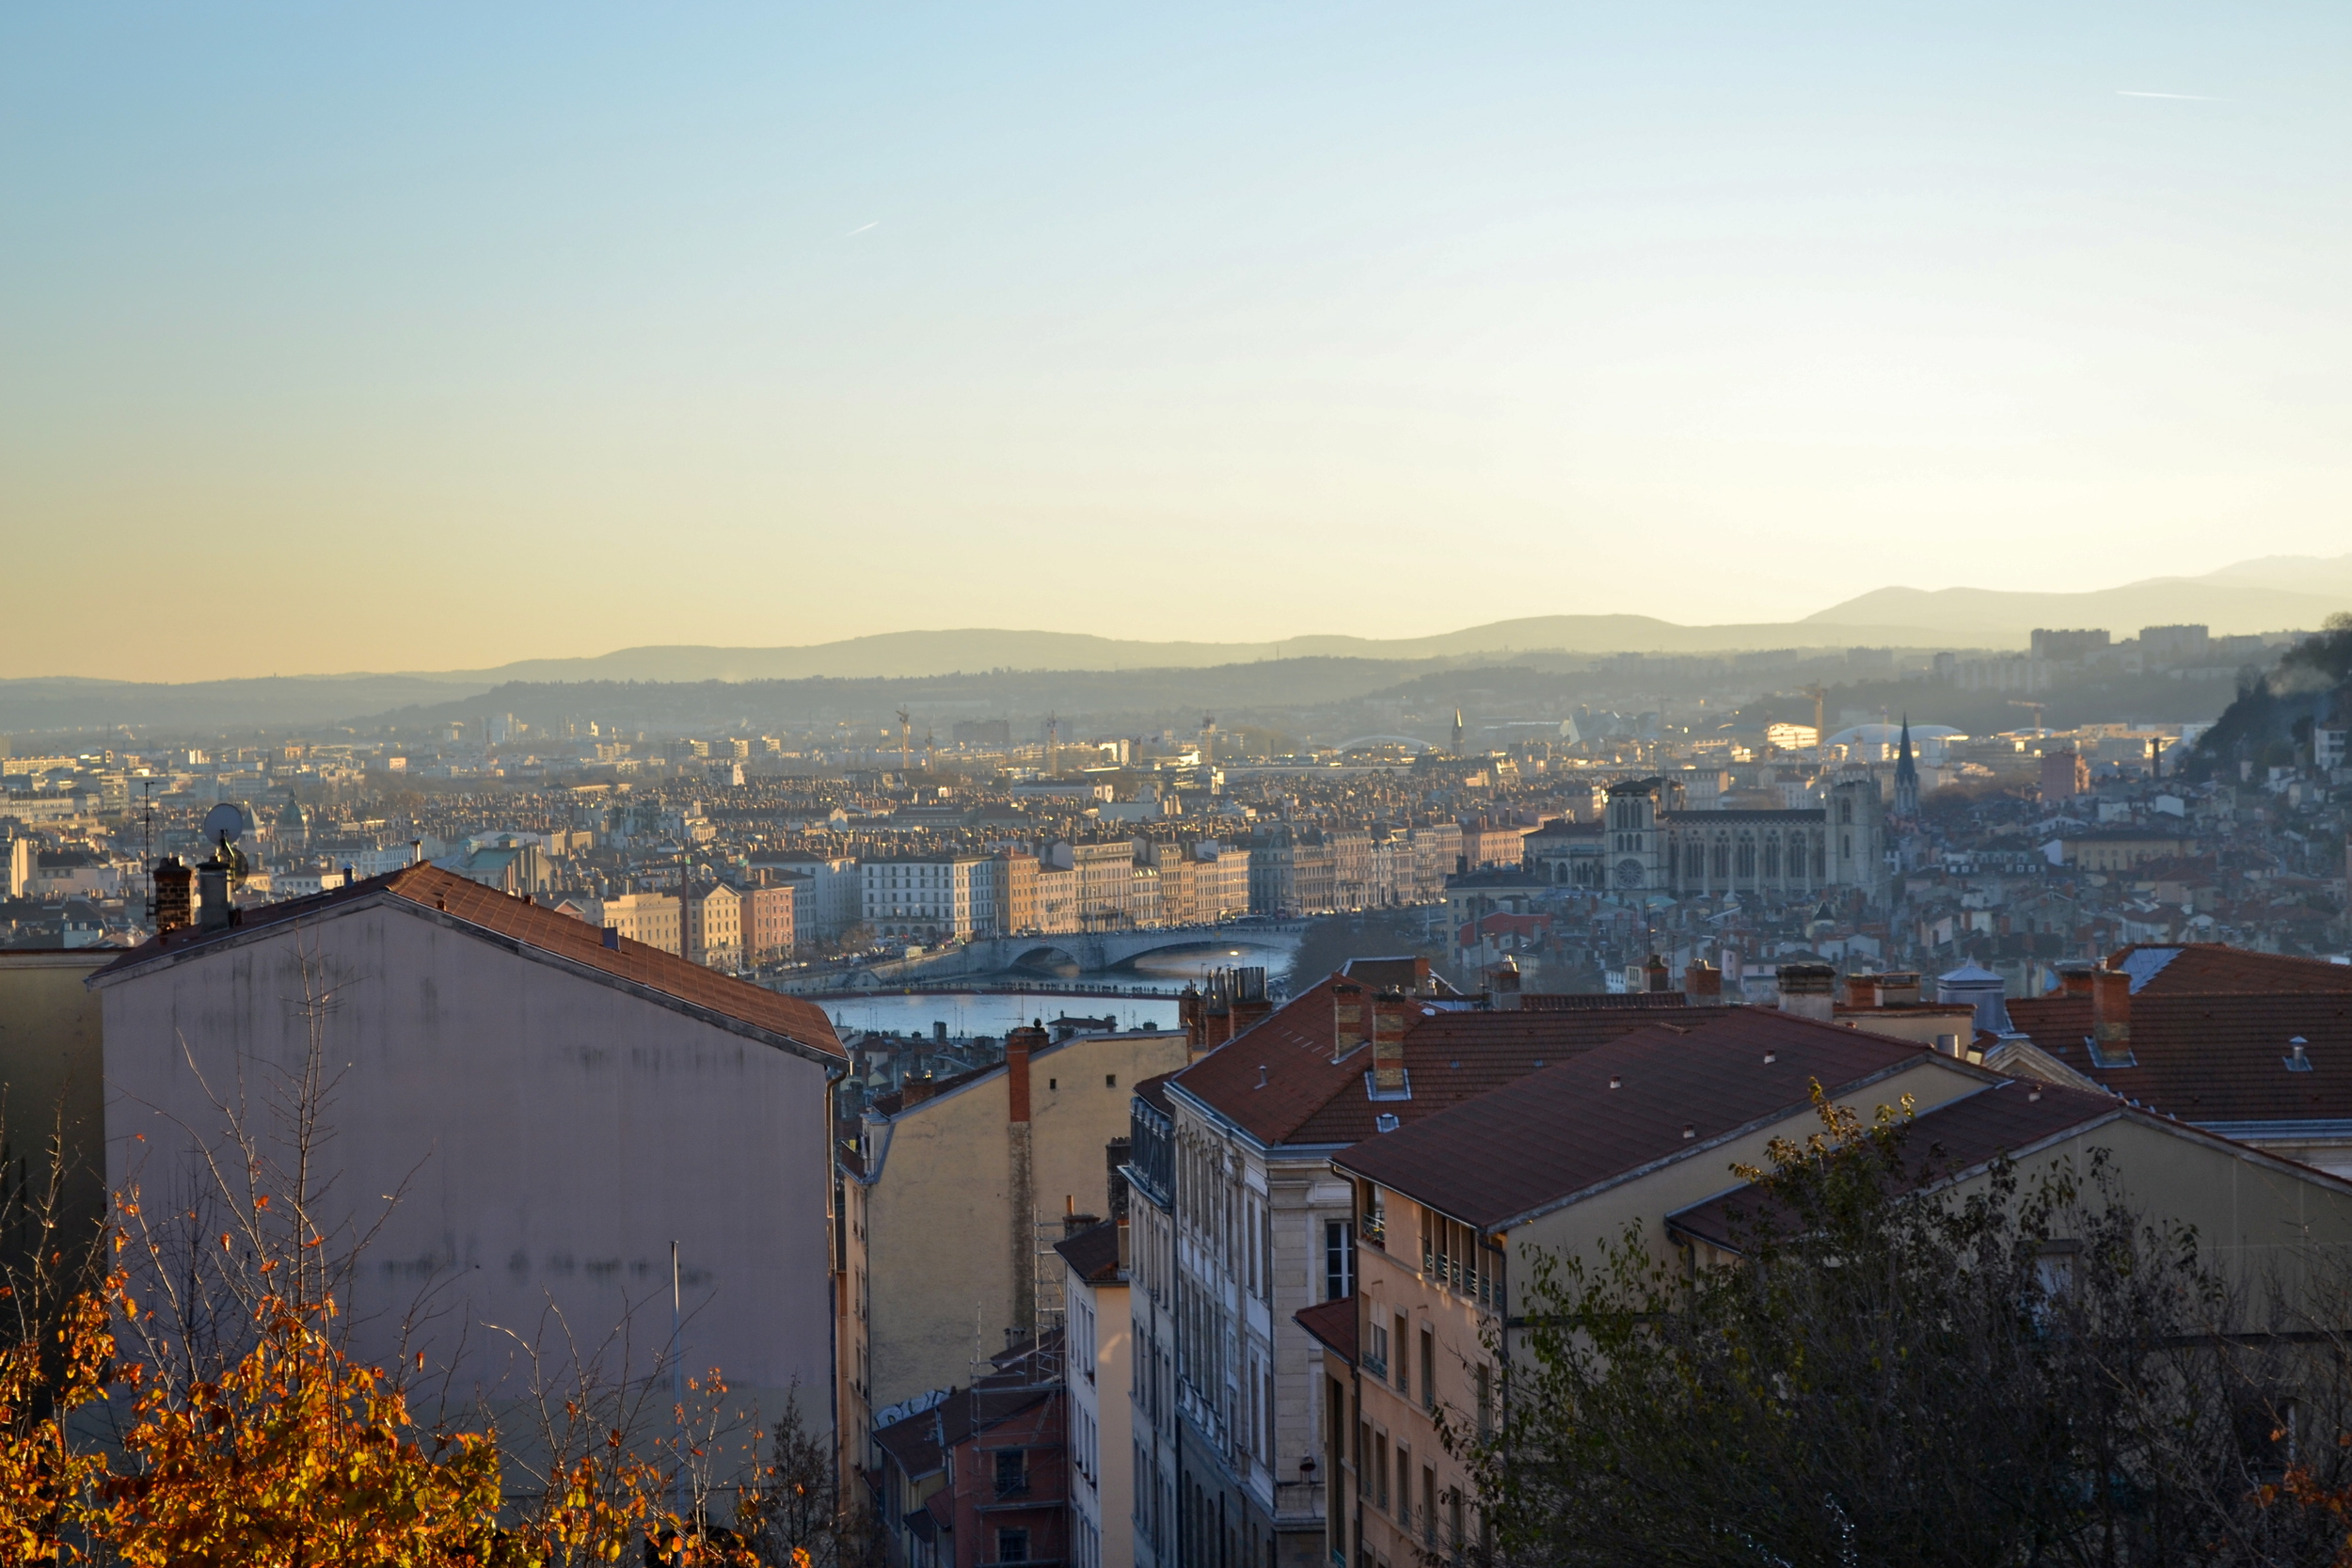 The view from Croix-Rousse